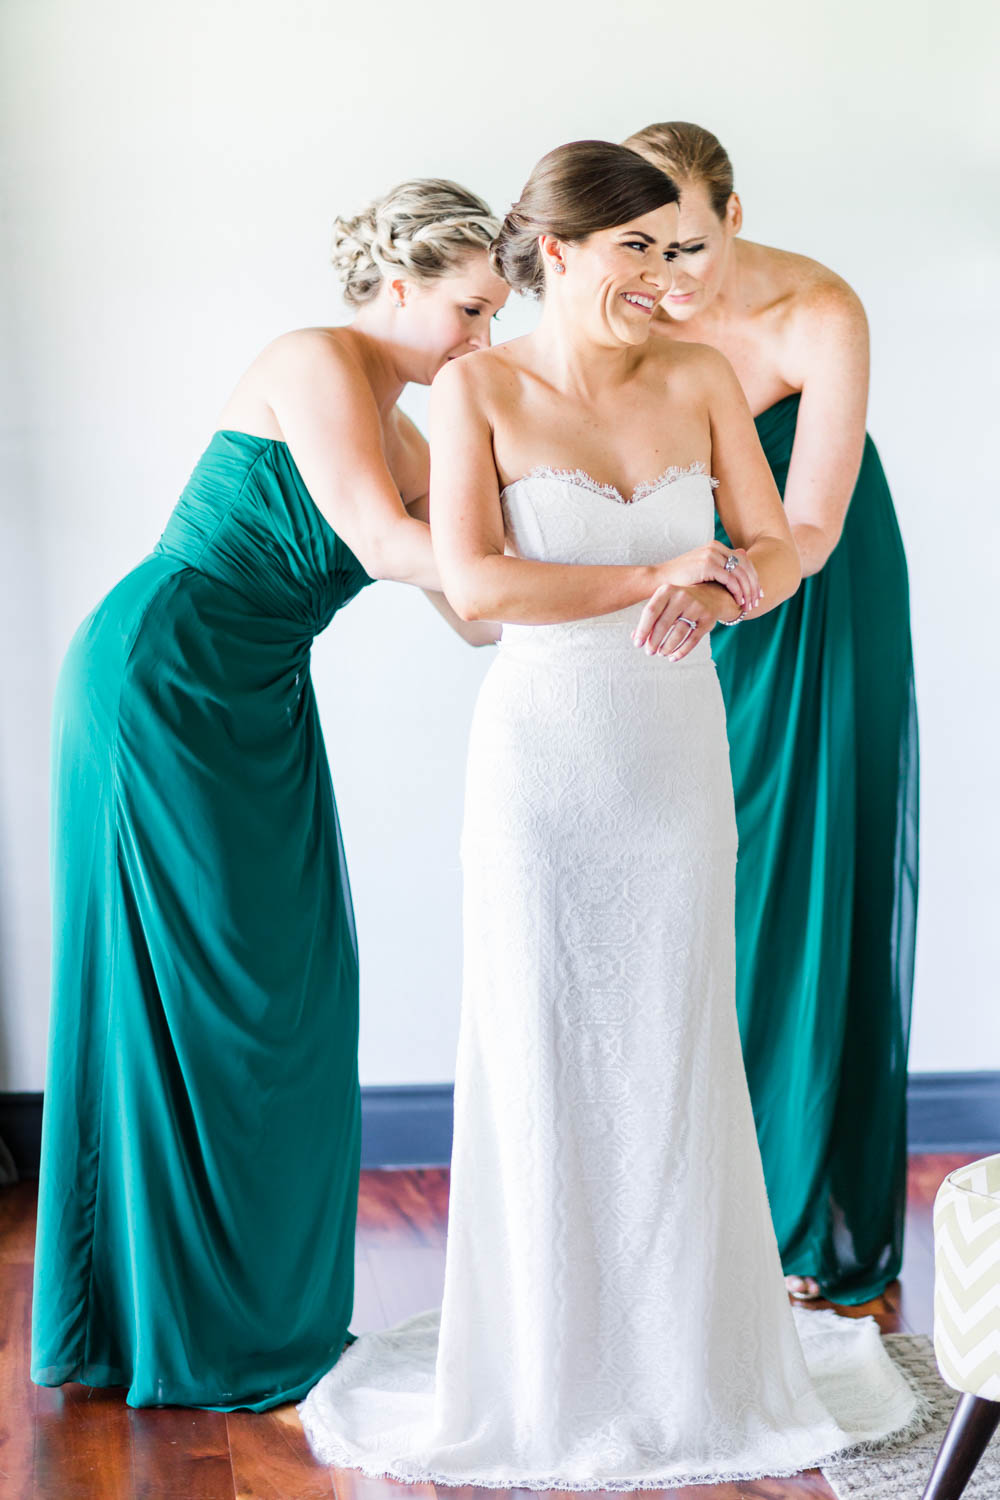 Bride getting on her gown for her Vibrant Winter Wedding at Omni Rancho Las Palmas, Cavin Elizabeth Photography